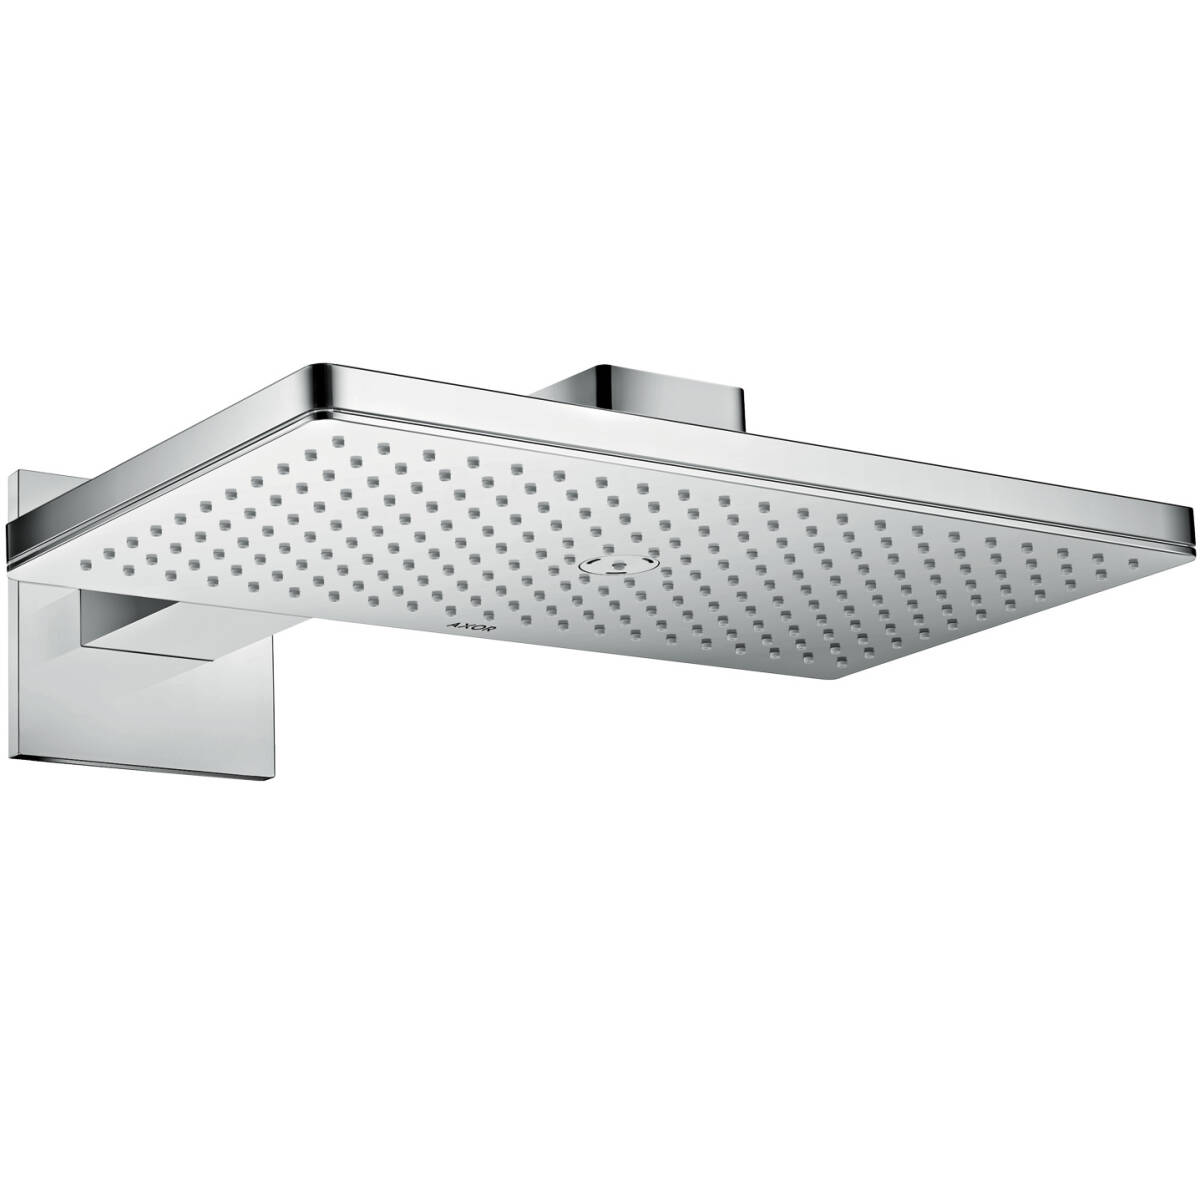 Overhead shower 460/300 1jet with shower arm and square escutcheon, Chrome, 35278000